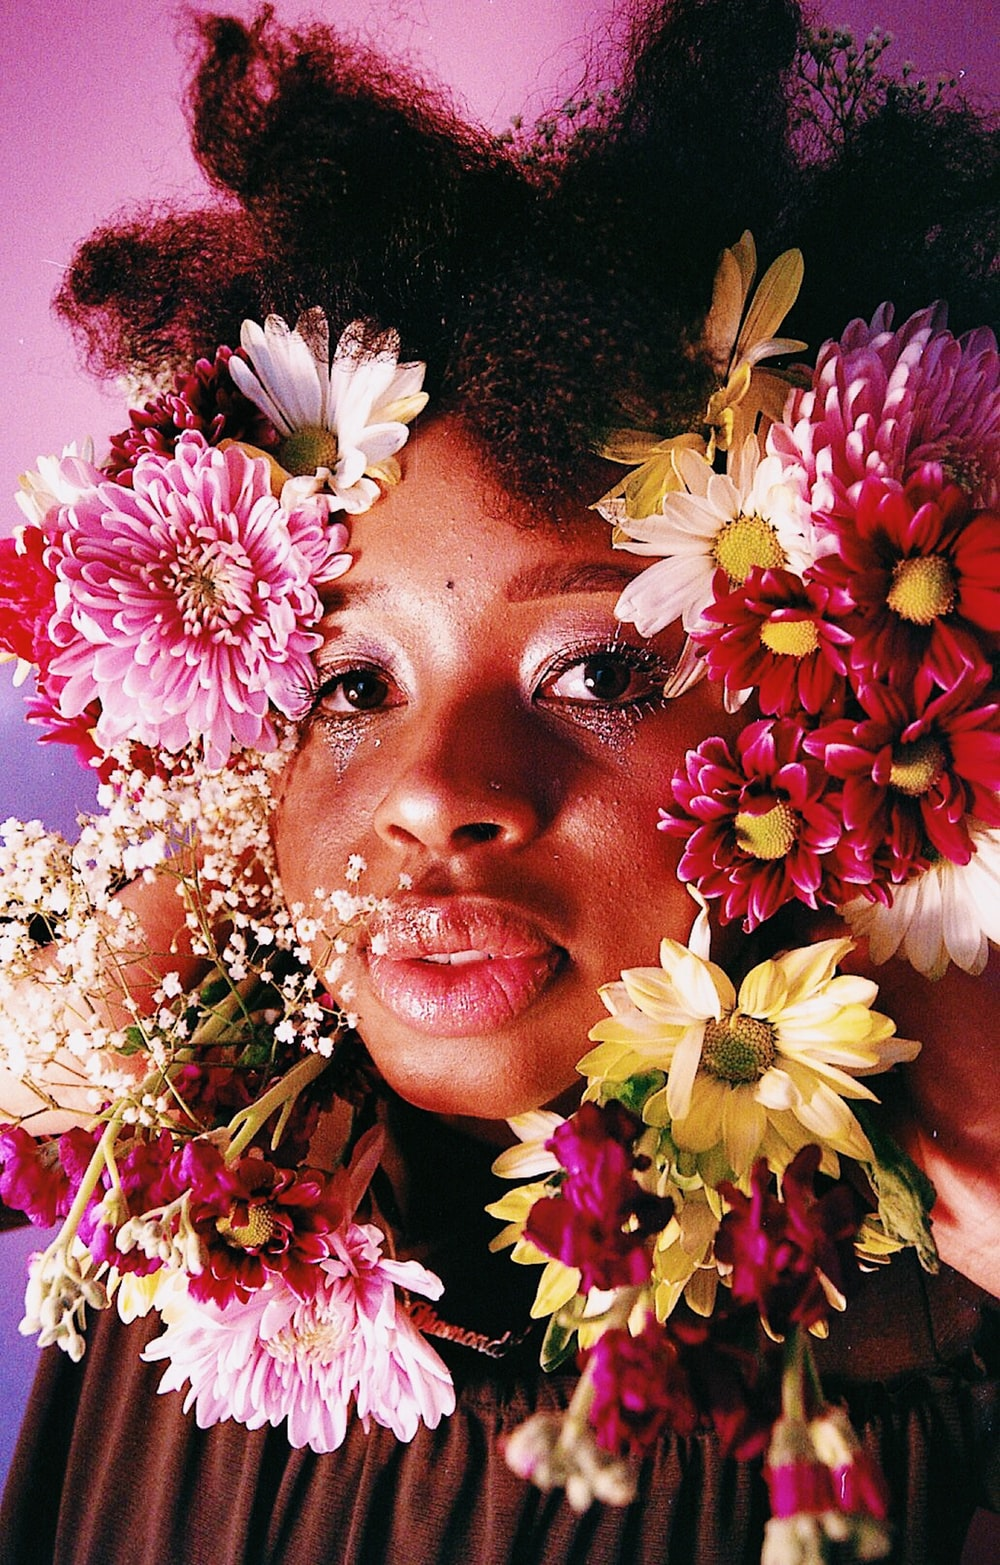 woman's face covered by flowers